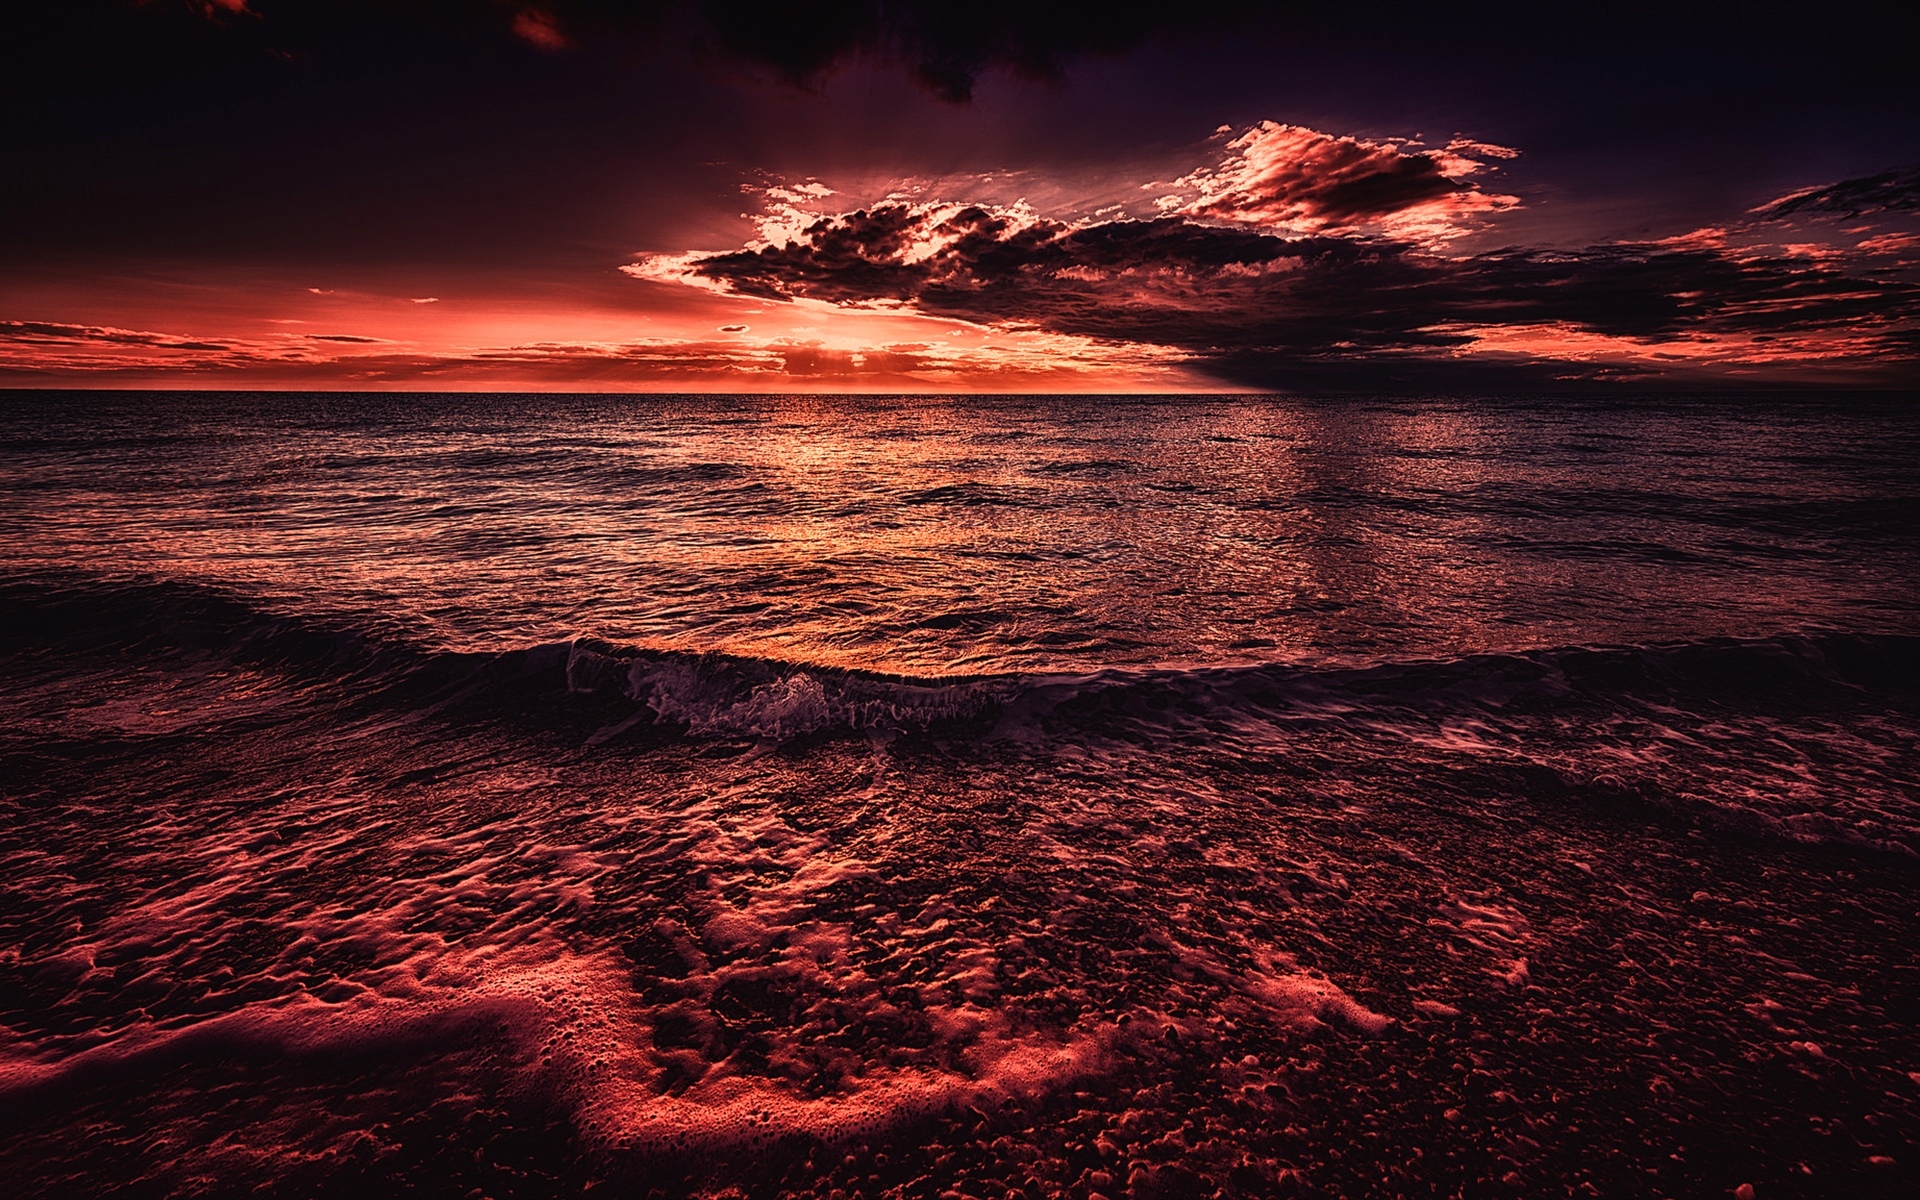 Sea, sunset, evening, red style 1920x1200 wallpaper